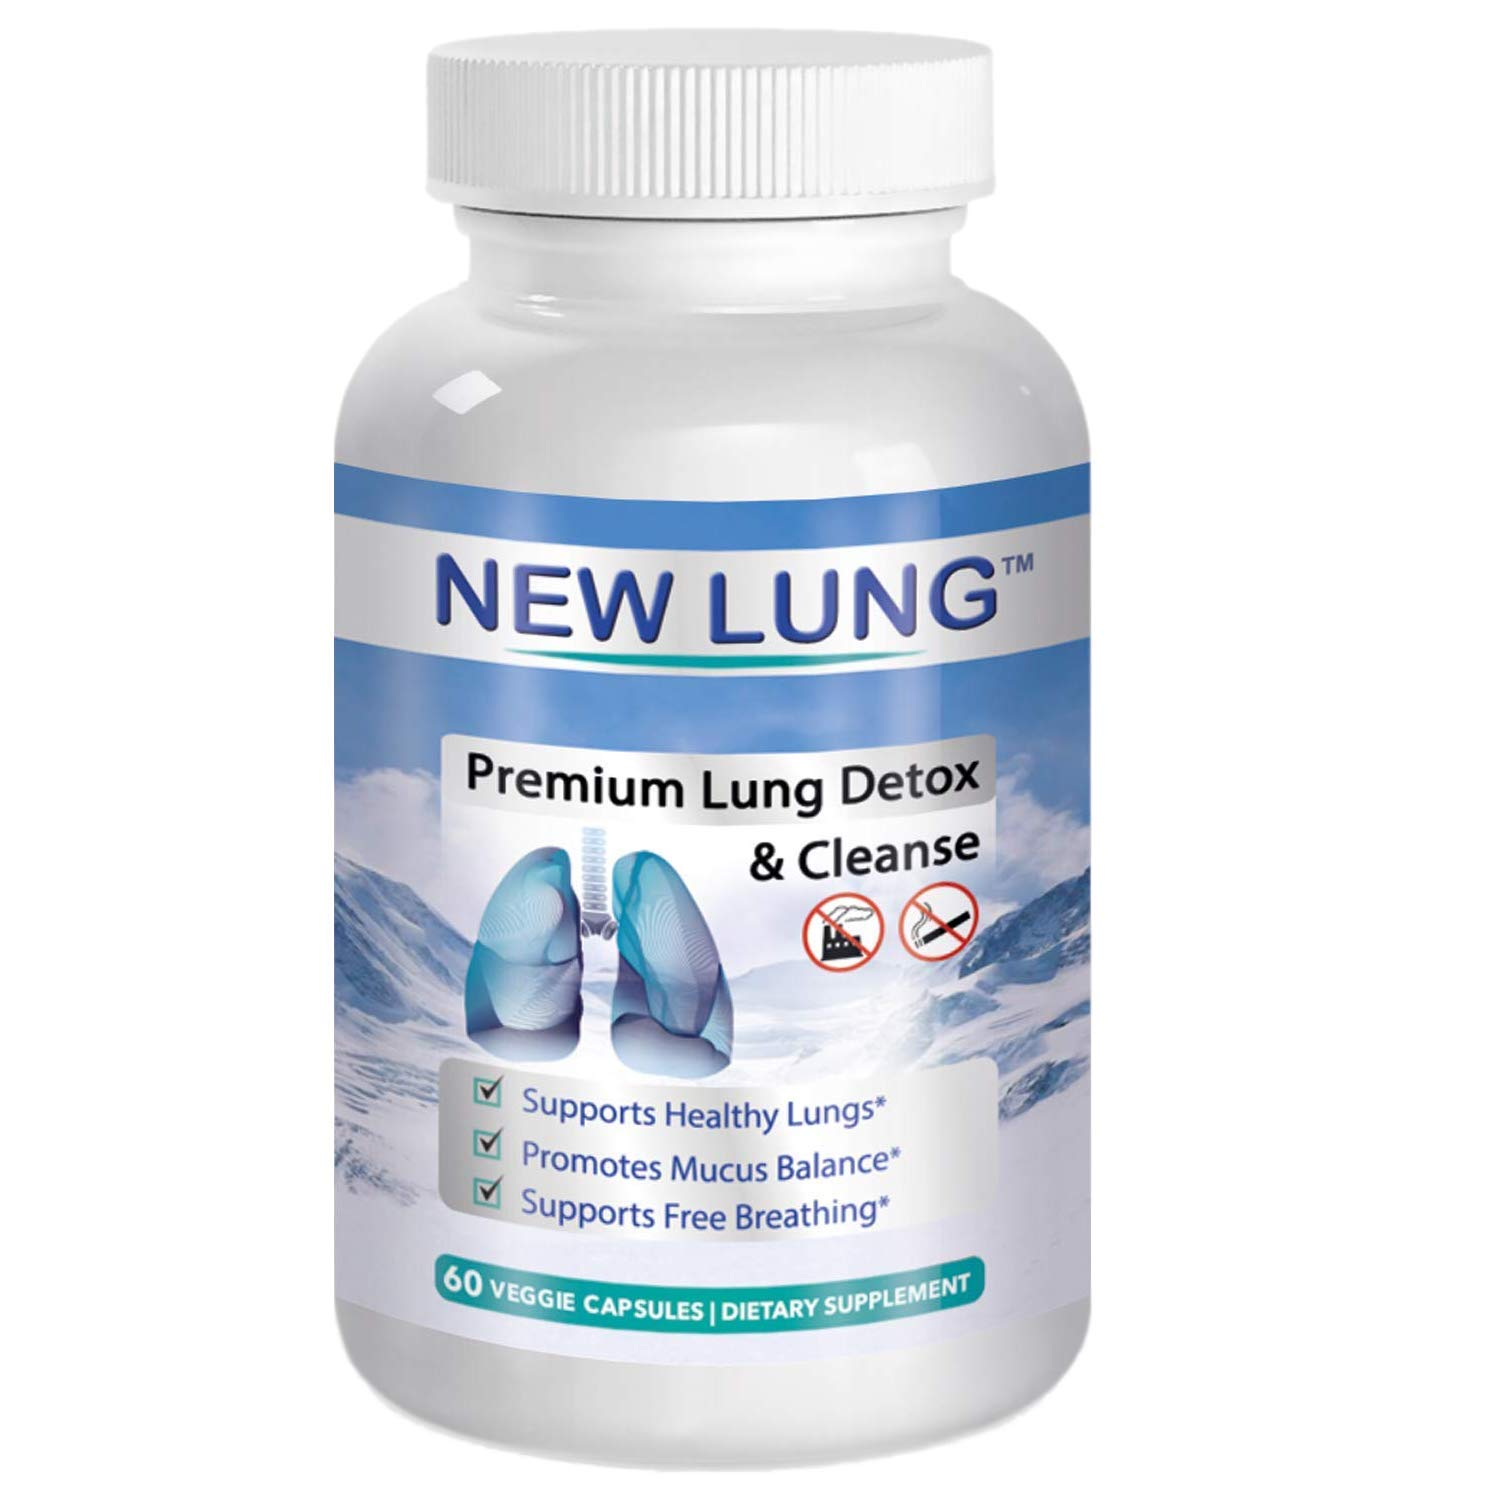 Lung Detox ⭐ Premium - Lung Cleanse ►Top Rated Herbal Lung Cleanse & Detox. Supports Healthy Lungs & Sinus from Harmful Effects of Smoggy Cities & Years of Smoking